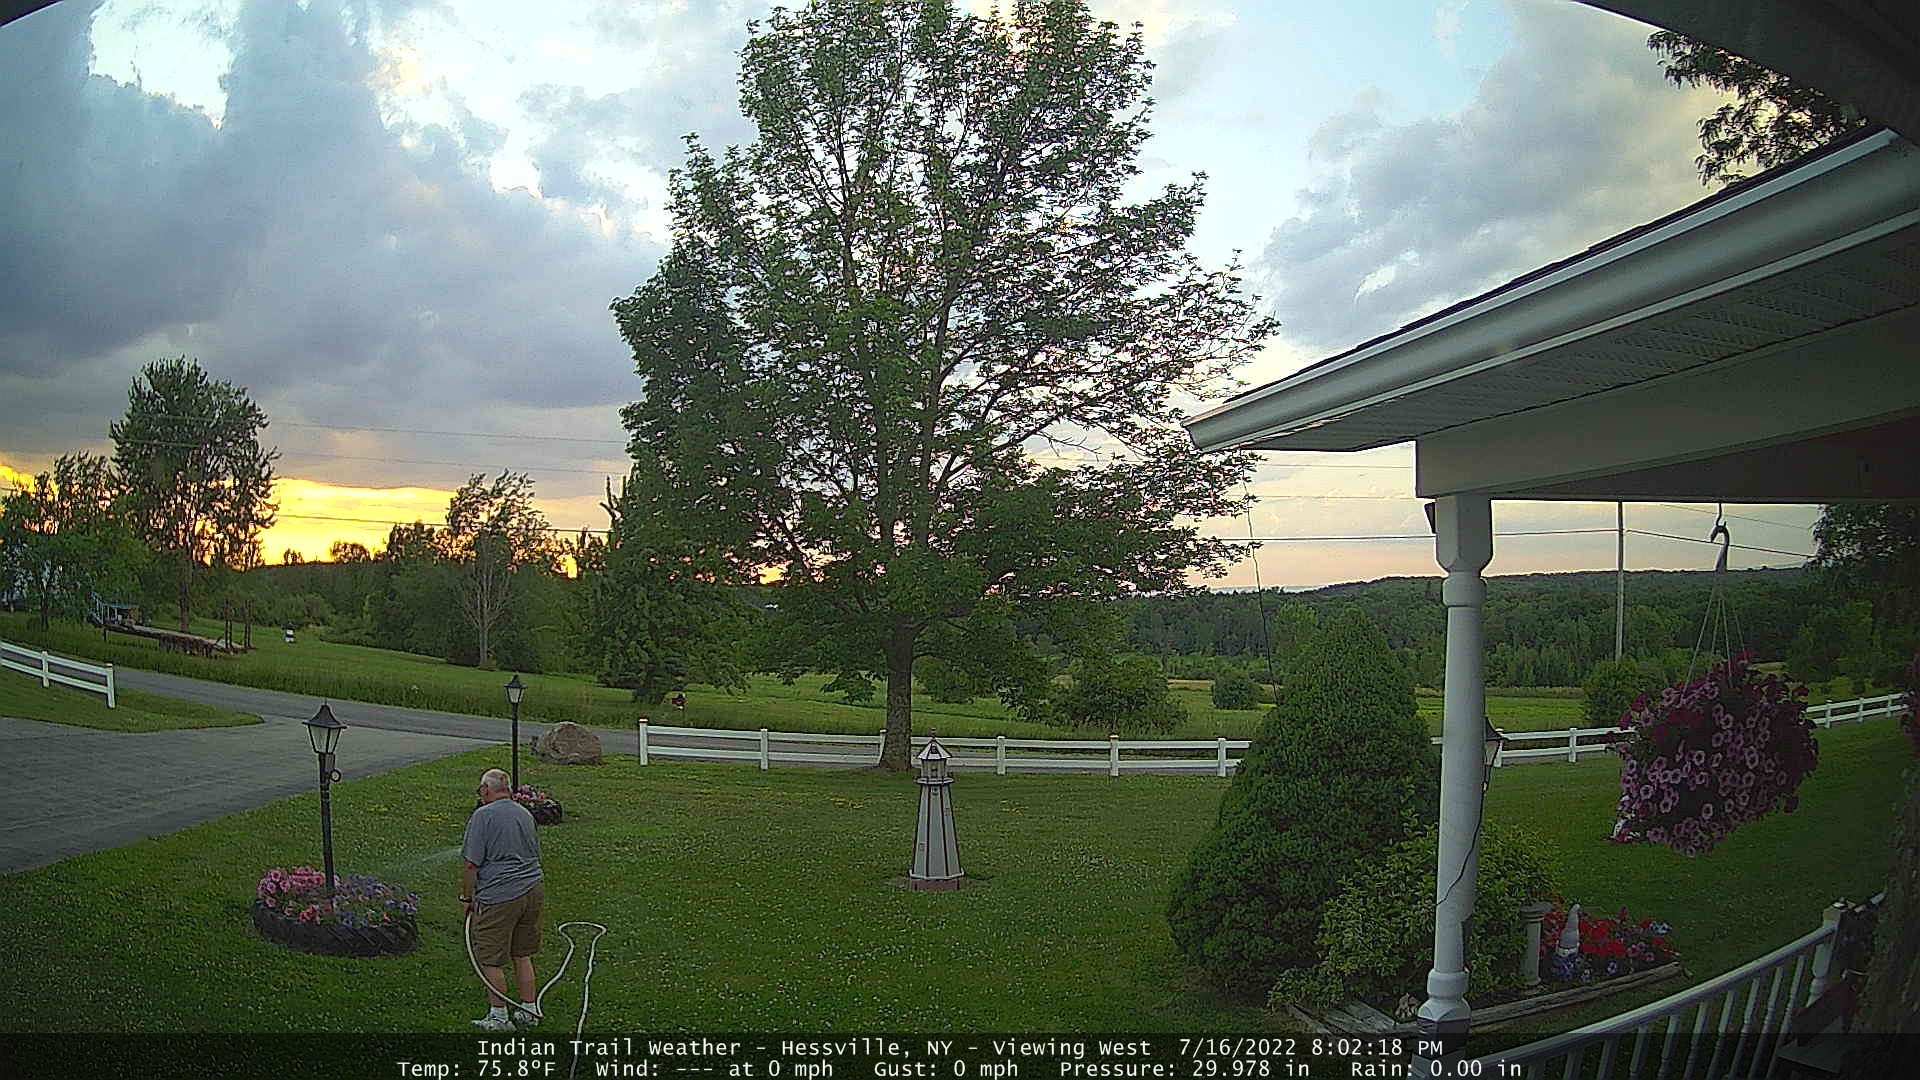 Indian Trail Weather Webcam - Viewing West